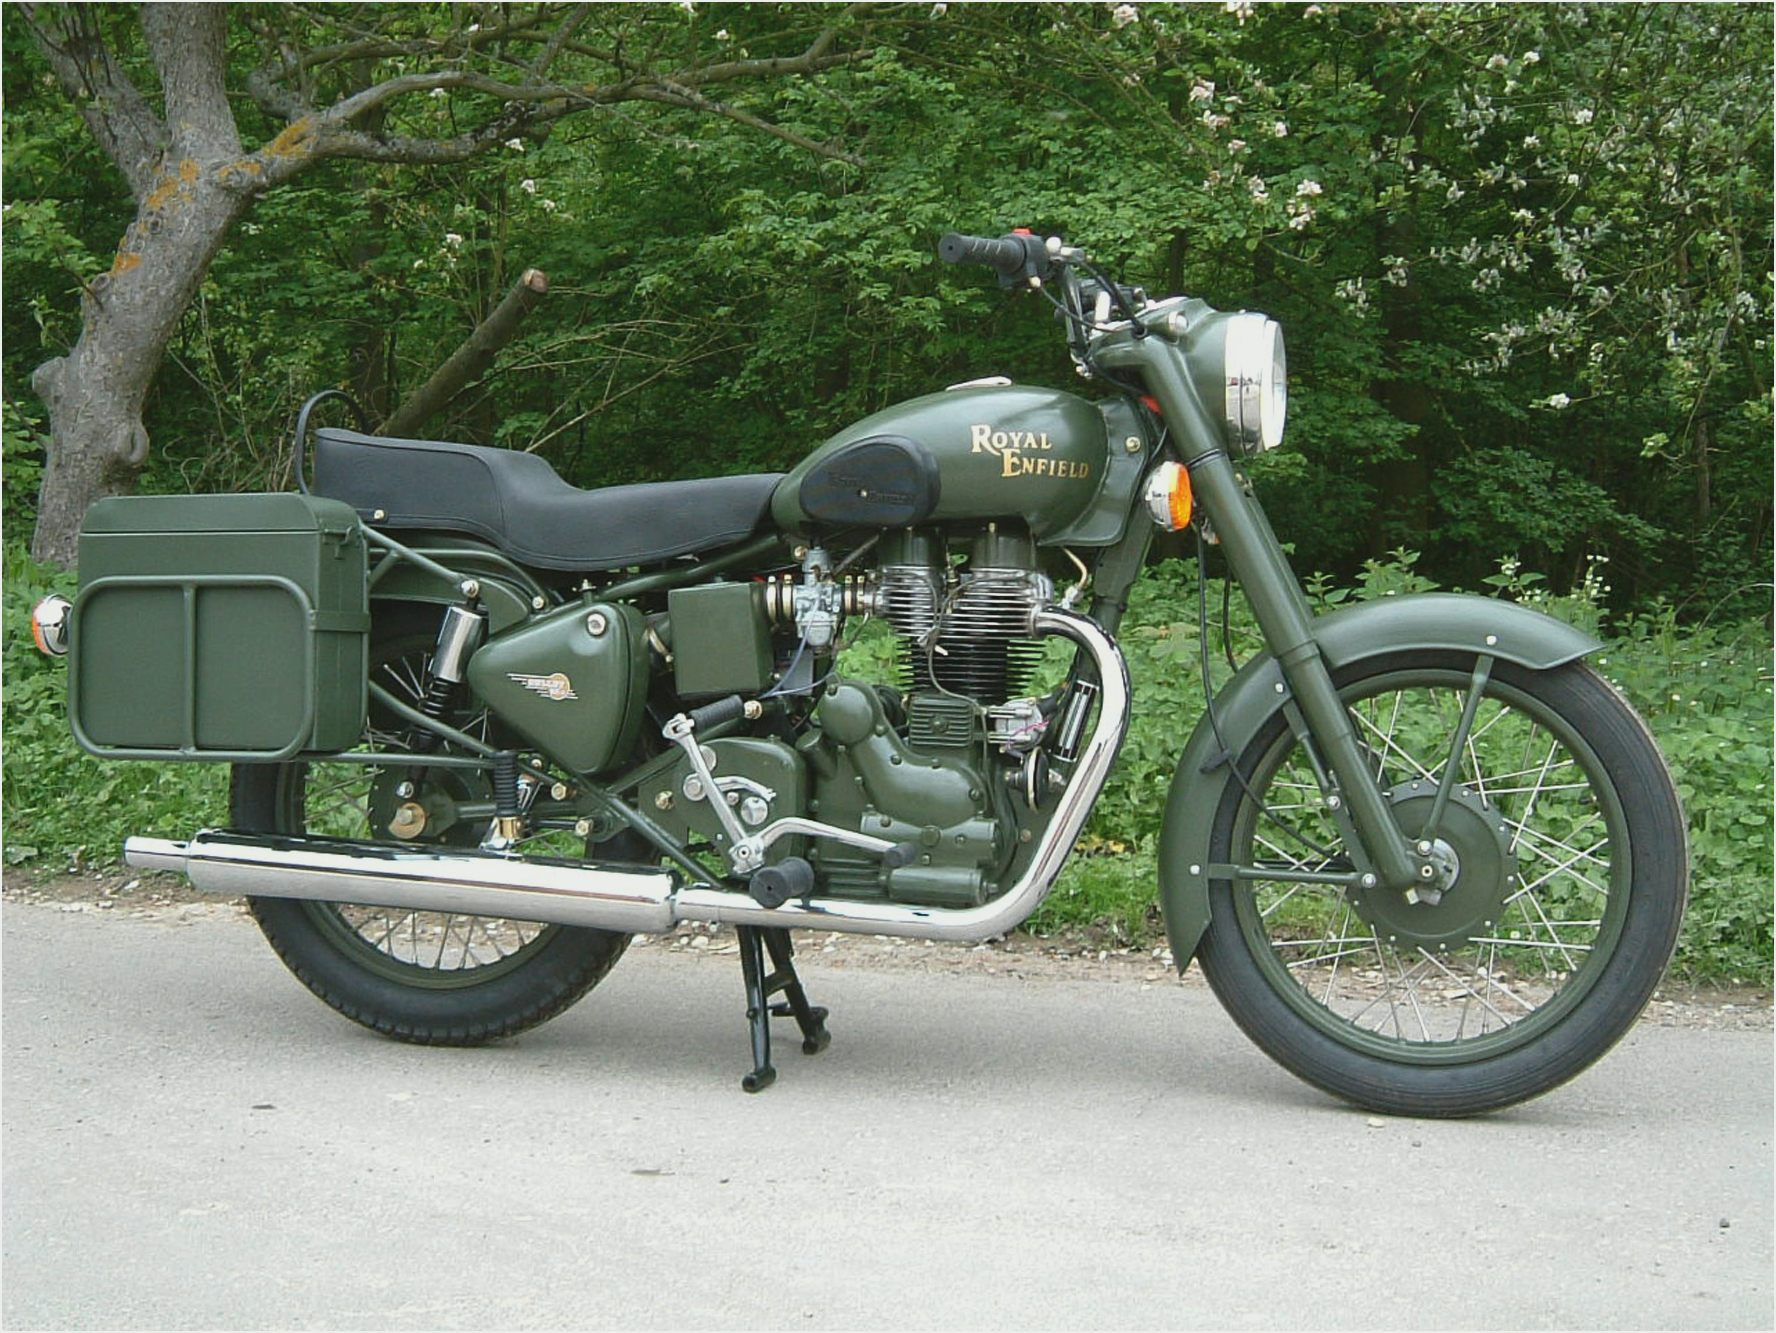 Royal Enfield Bullet 500 Army 2003 images #123843